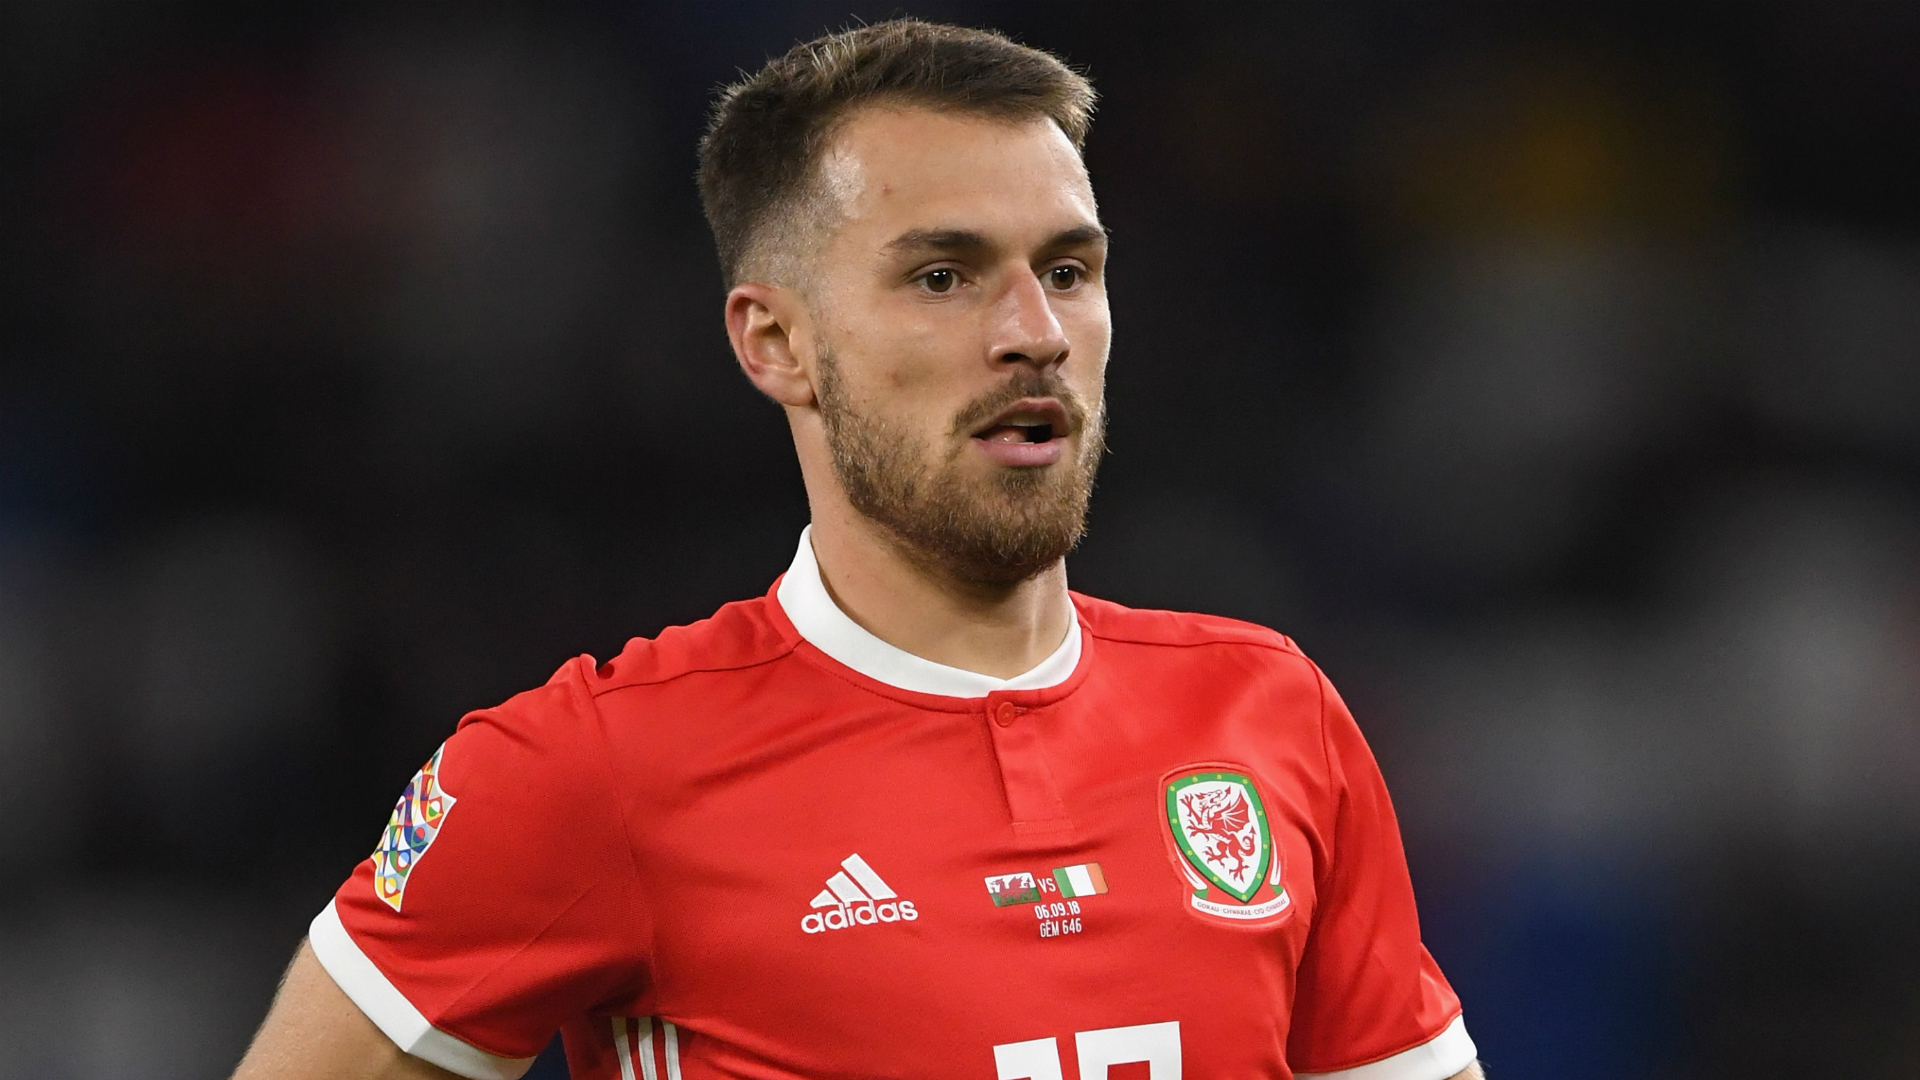 Aaron Ramsey looking forward to work with `approachable` Maurizio Sarri at Juventus